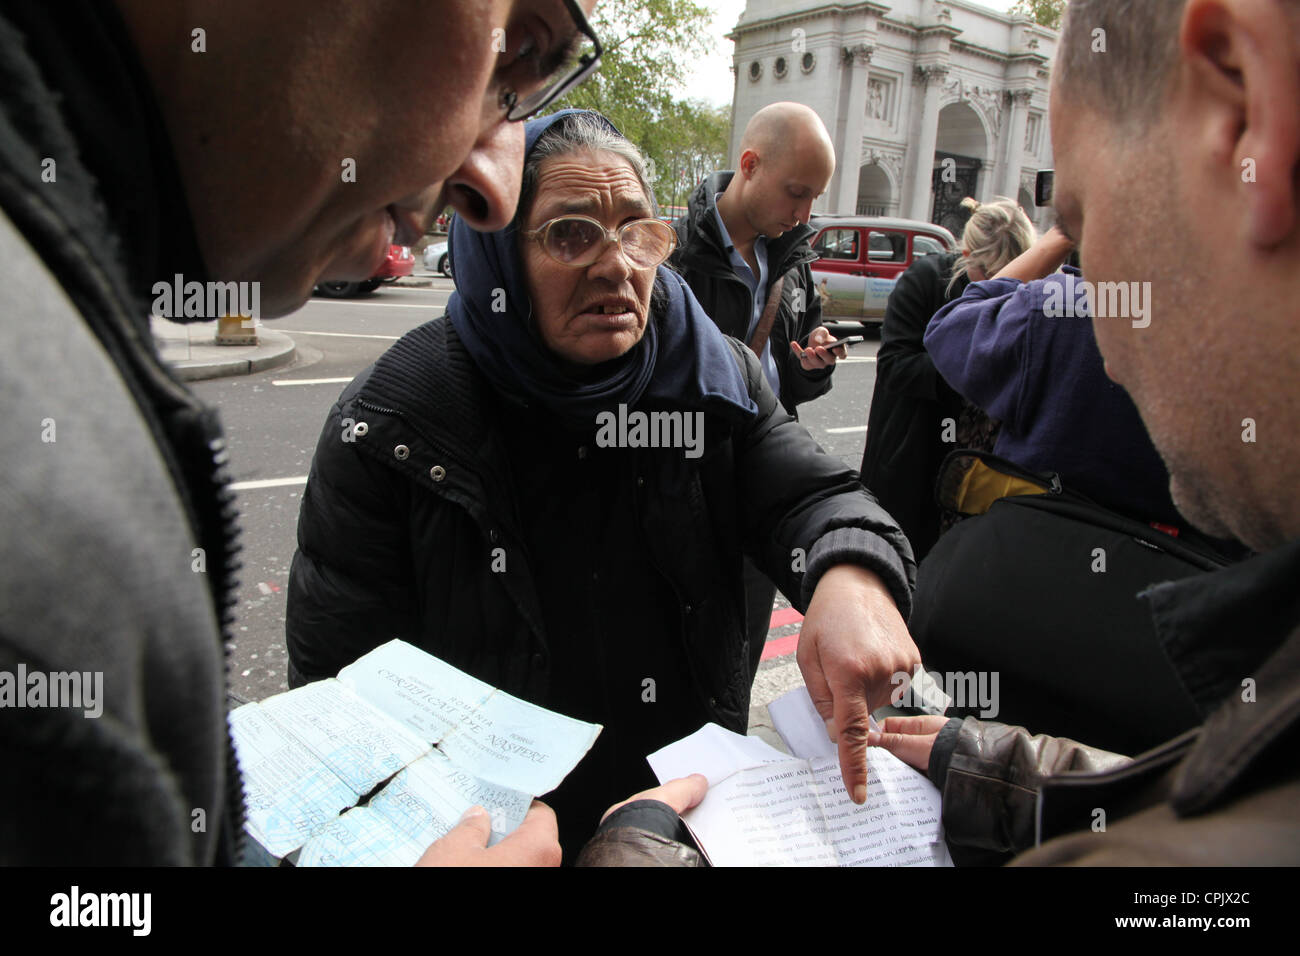 A woman's document's are checked by border control officials in London's West End. She was seen begging - Stock Image